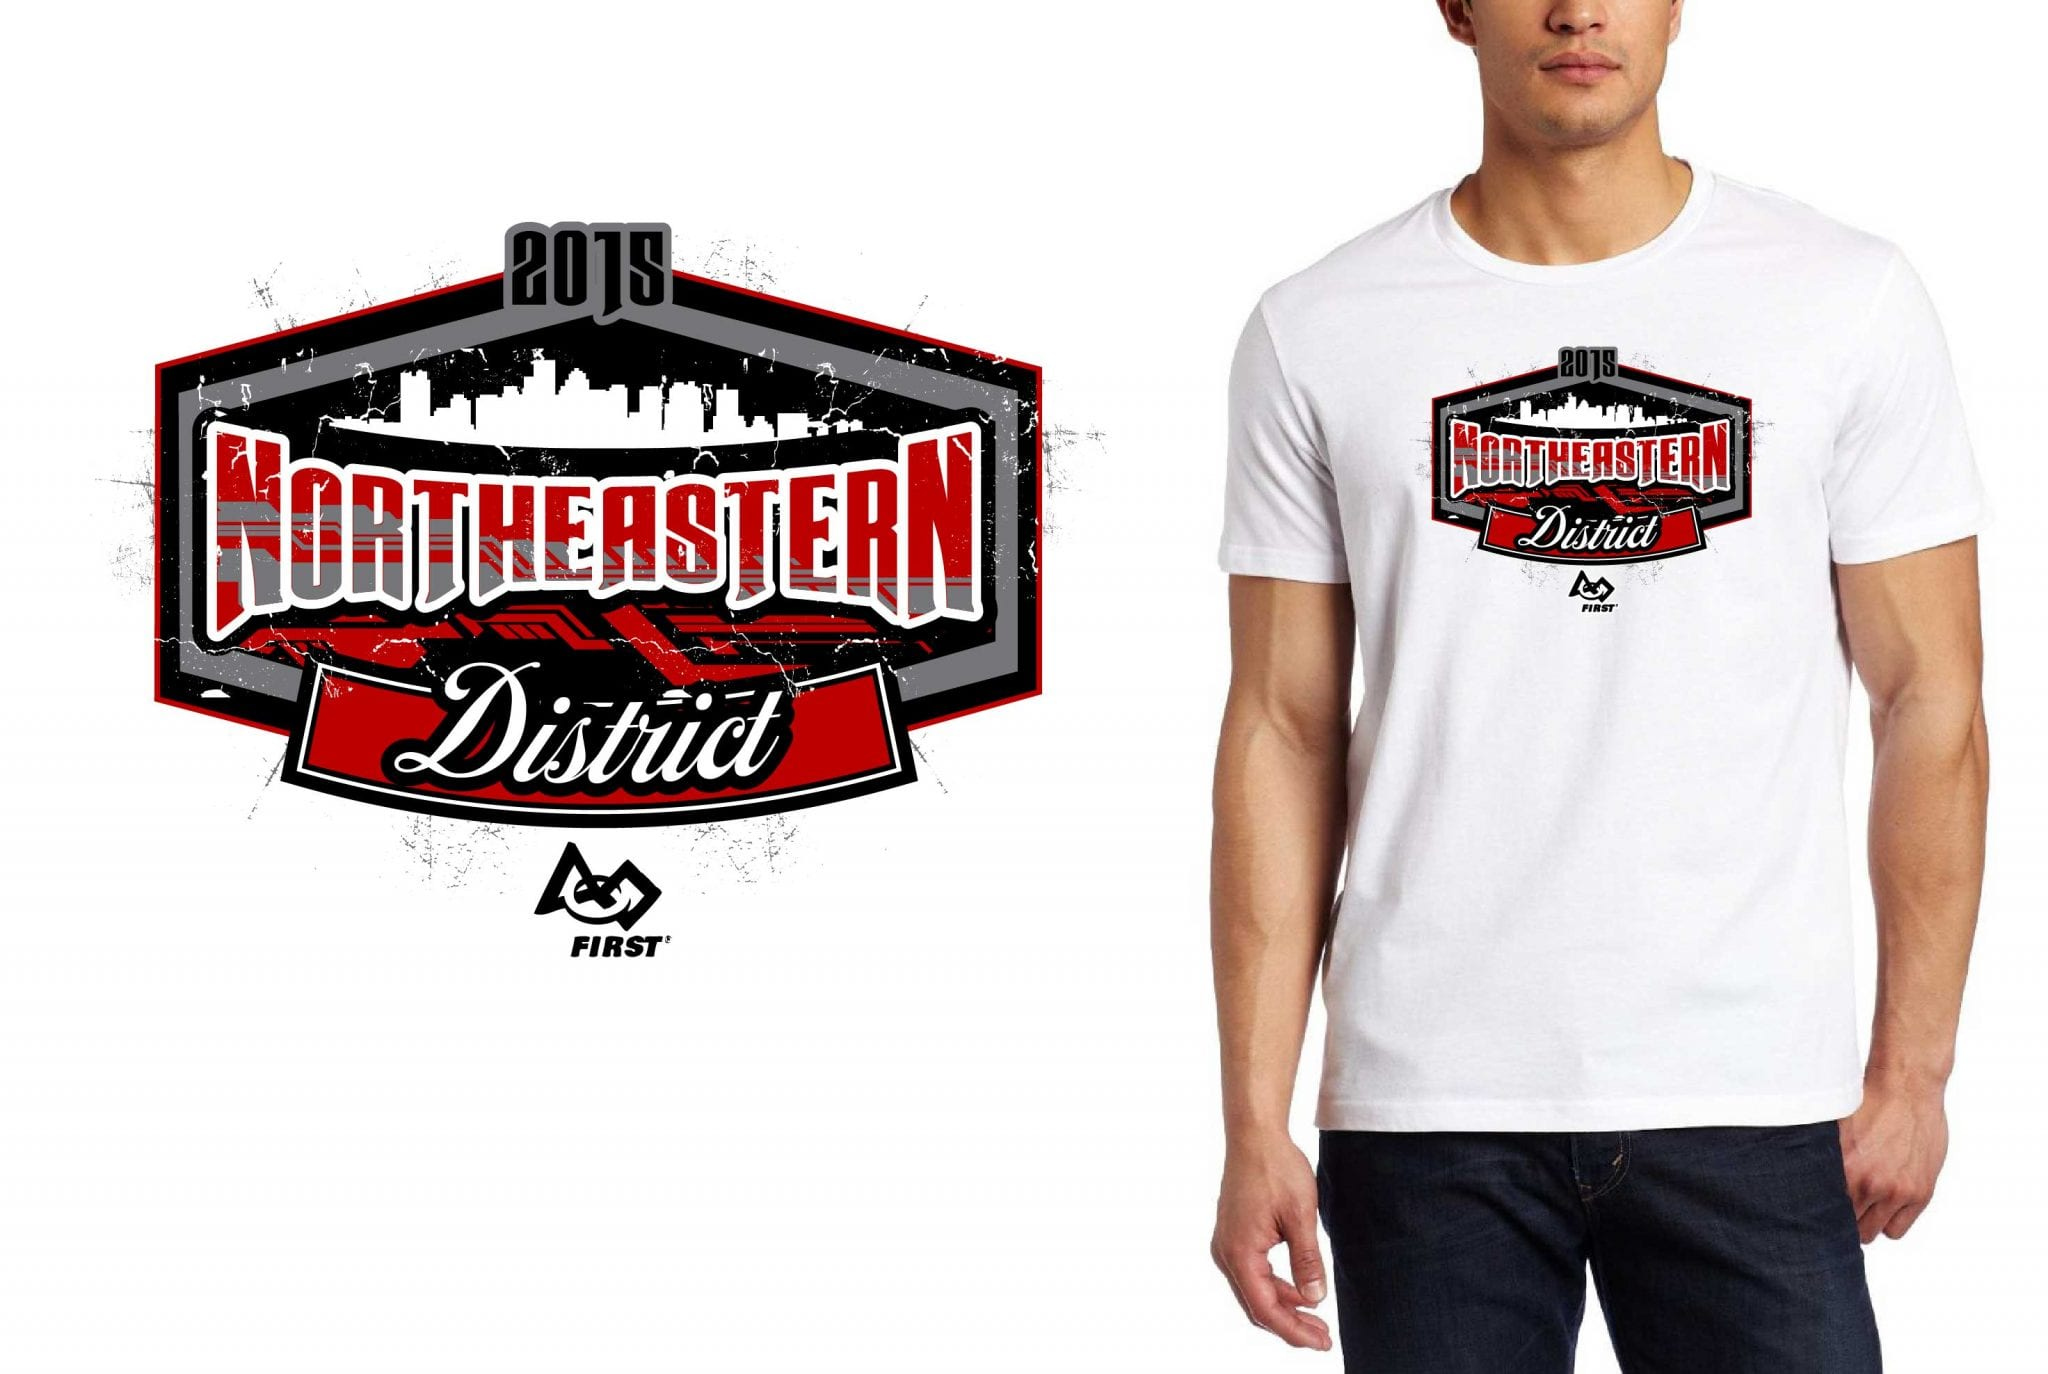 2015 Northeastern District cool robotics tshirt logo design